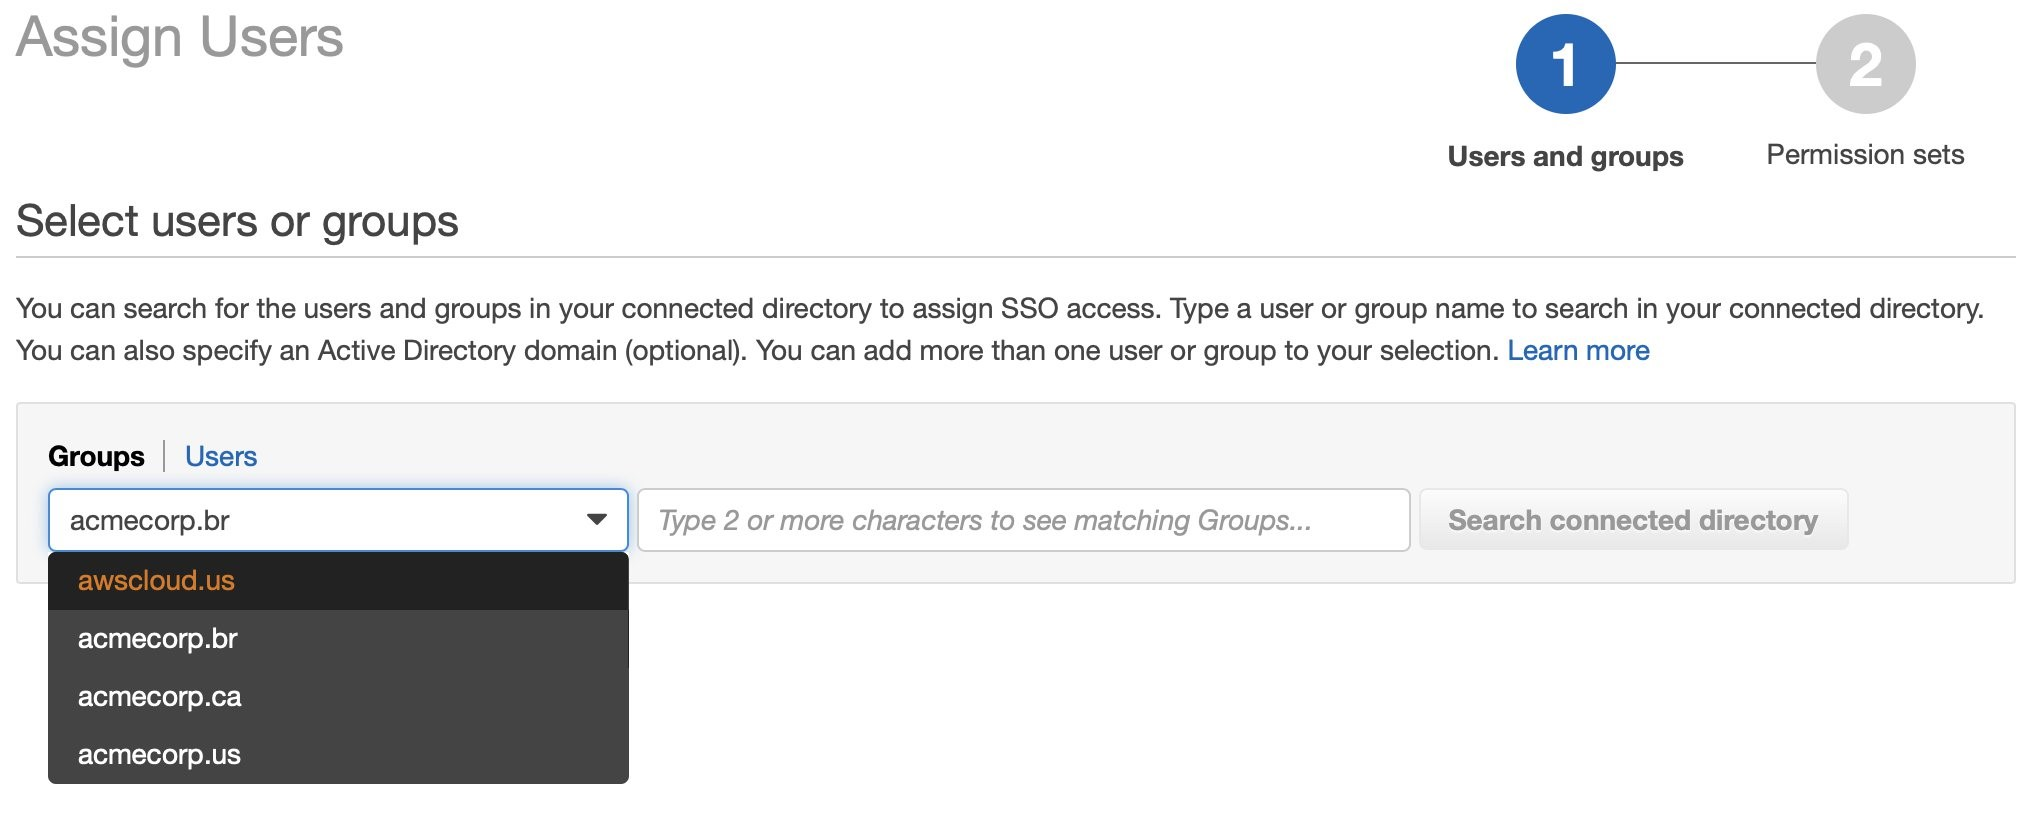 Figure 4 - Selecting Users or Groups